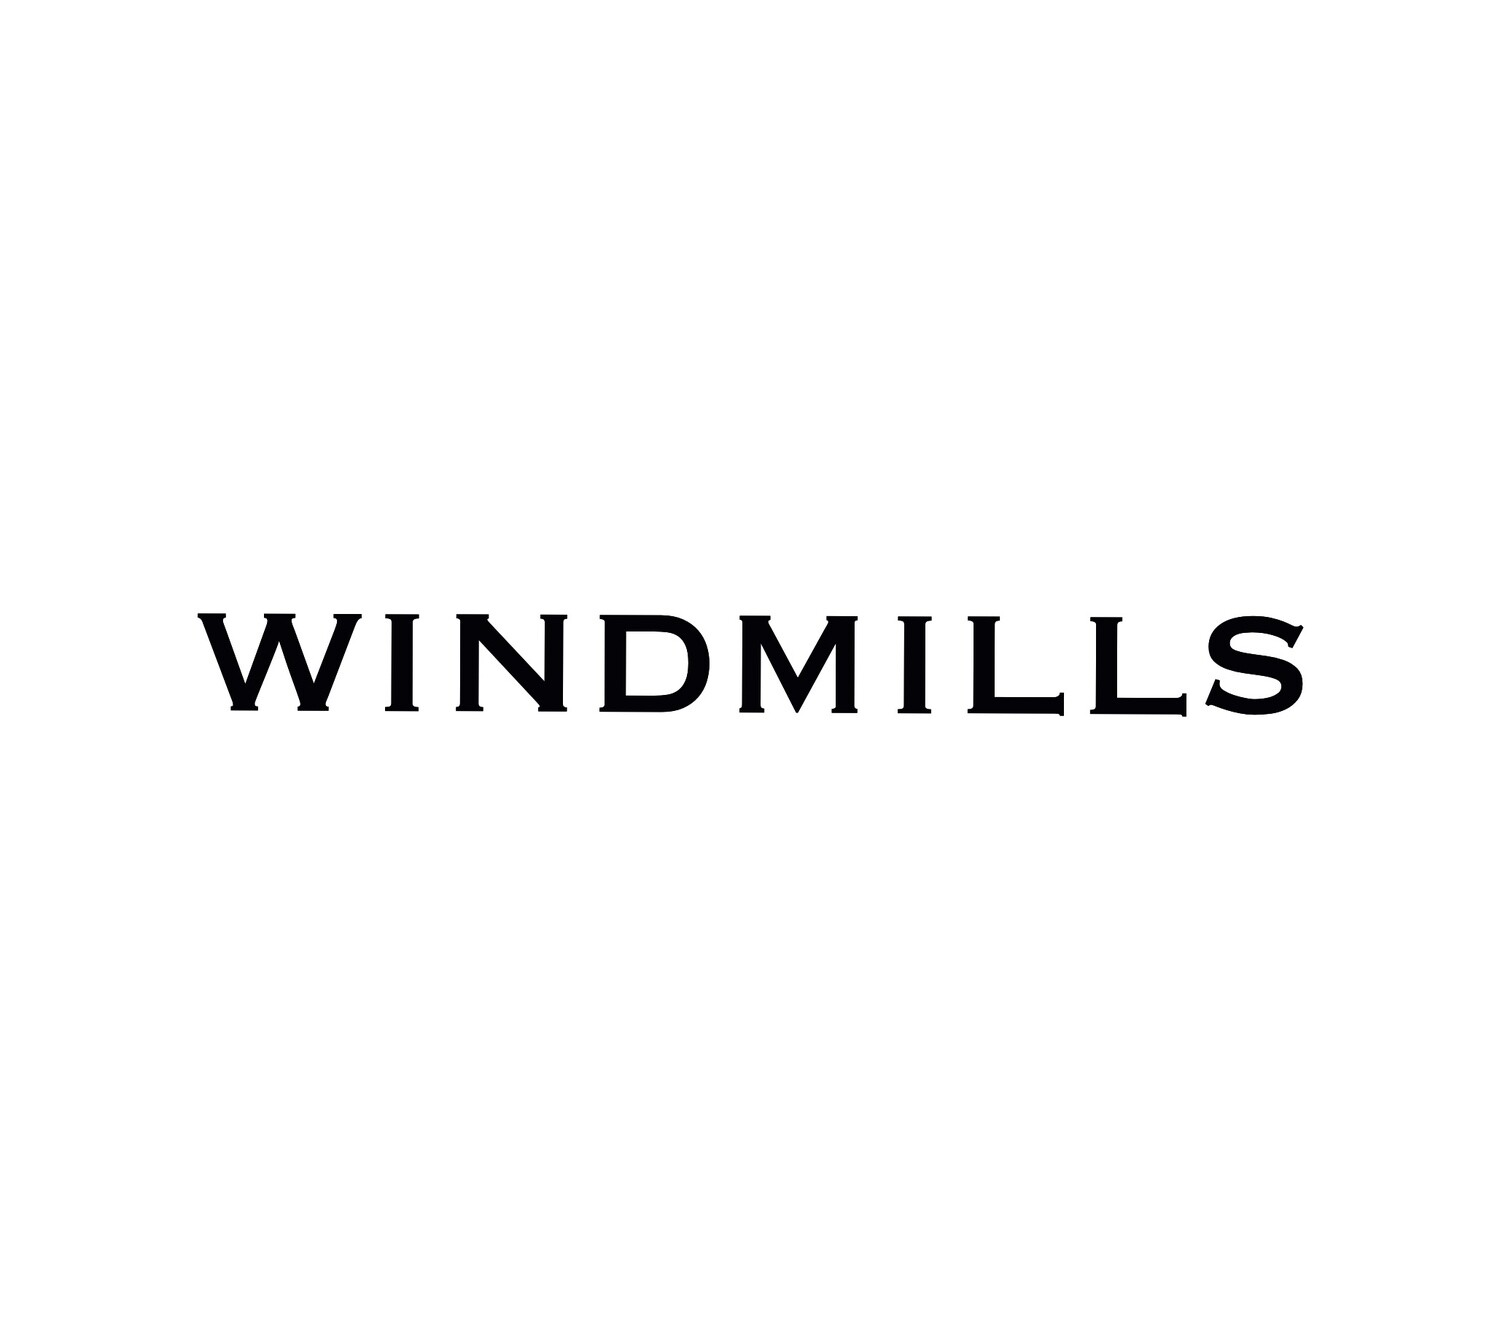 Windmills - Digital Download